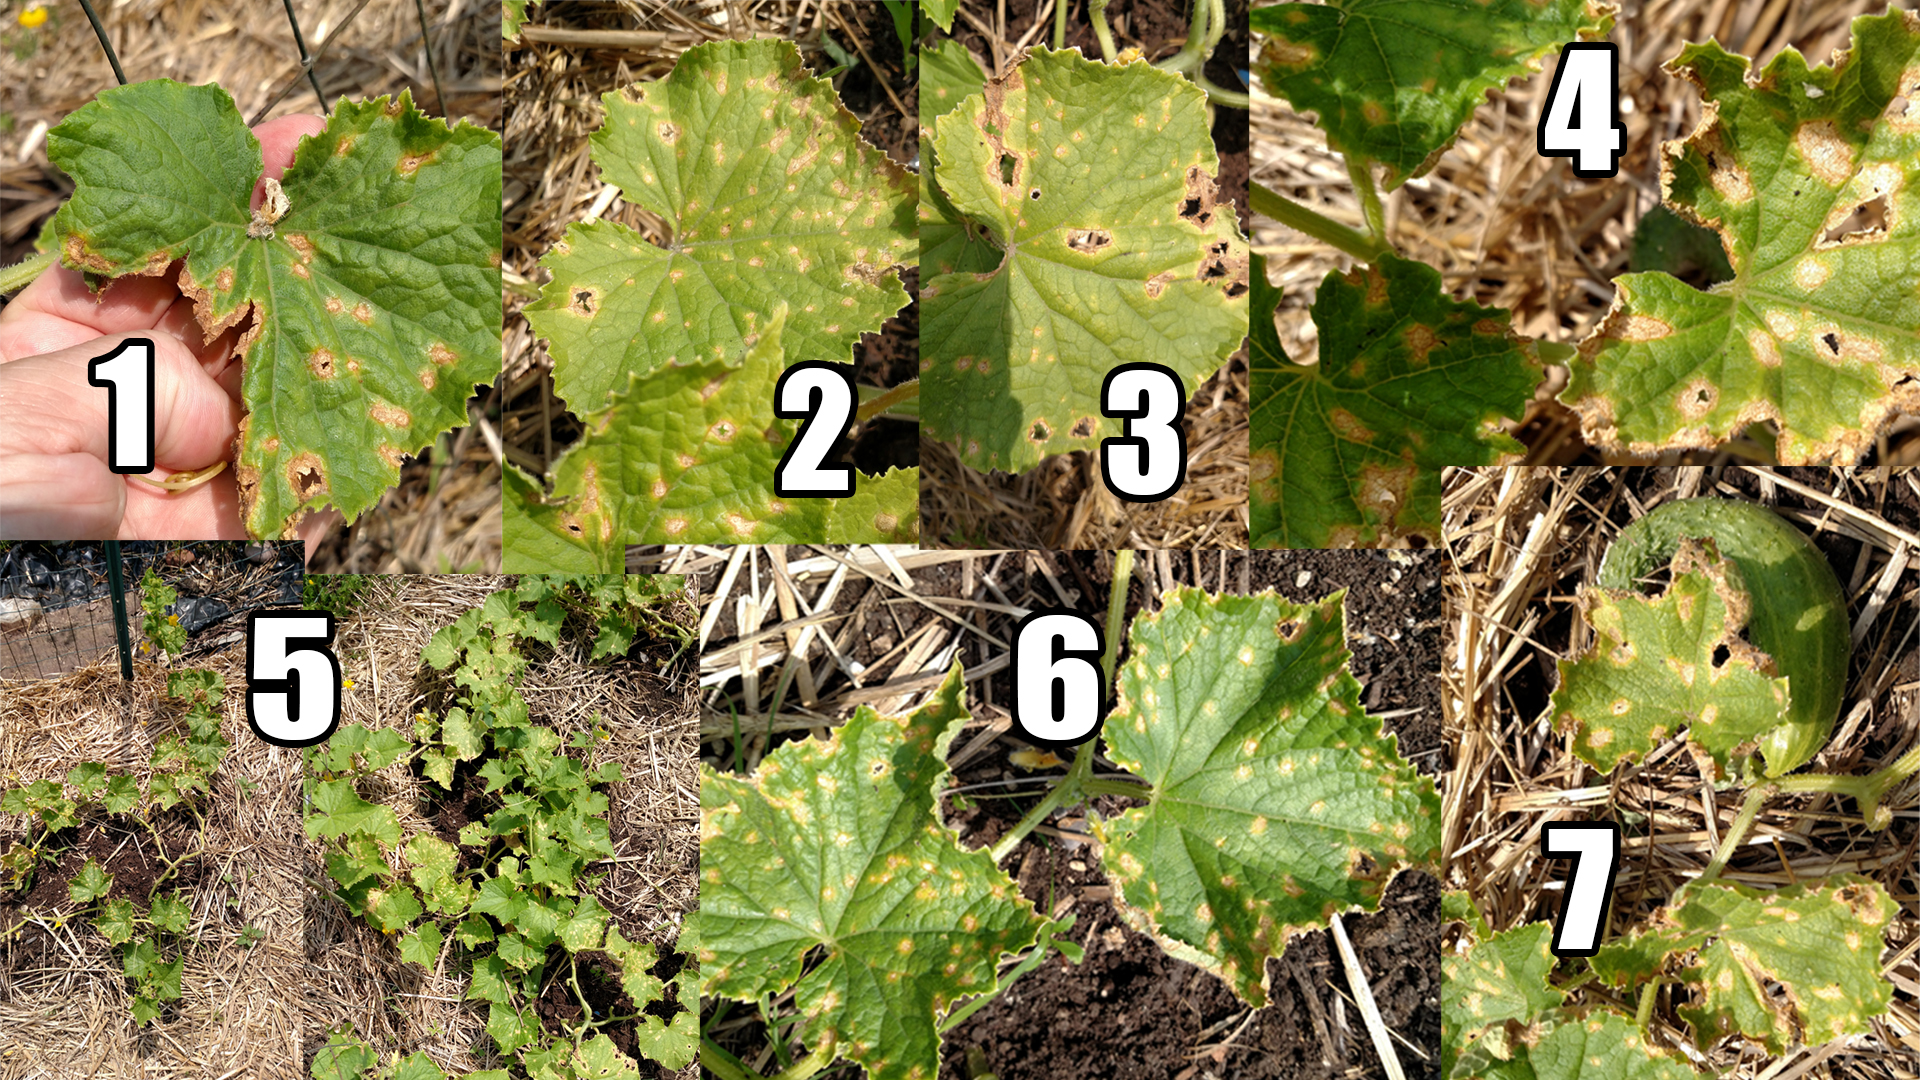 Montage of my ailing cucumber plants